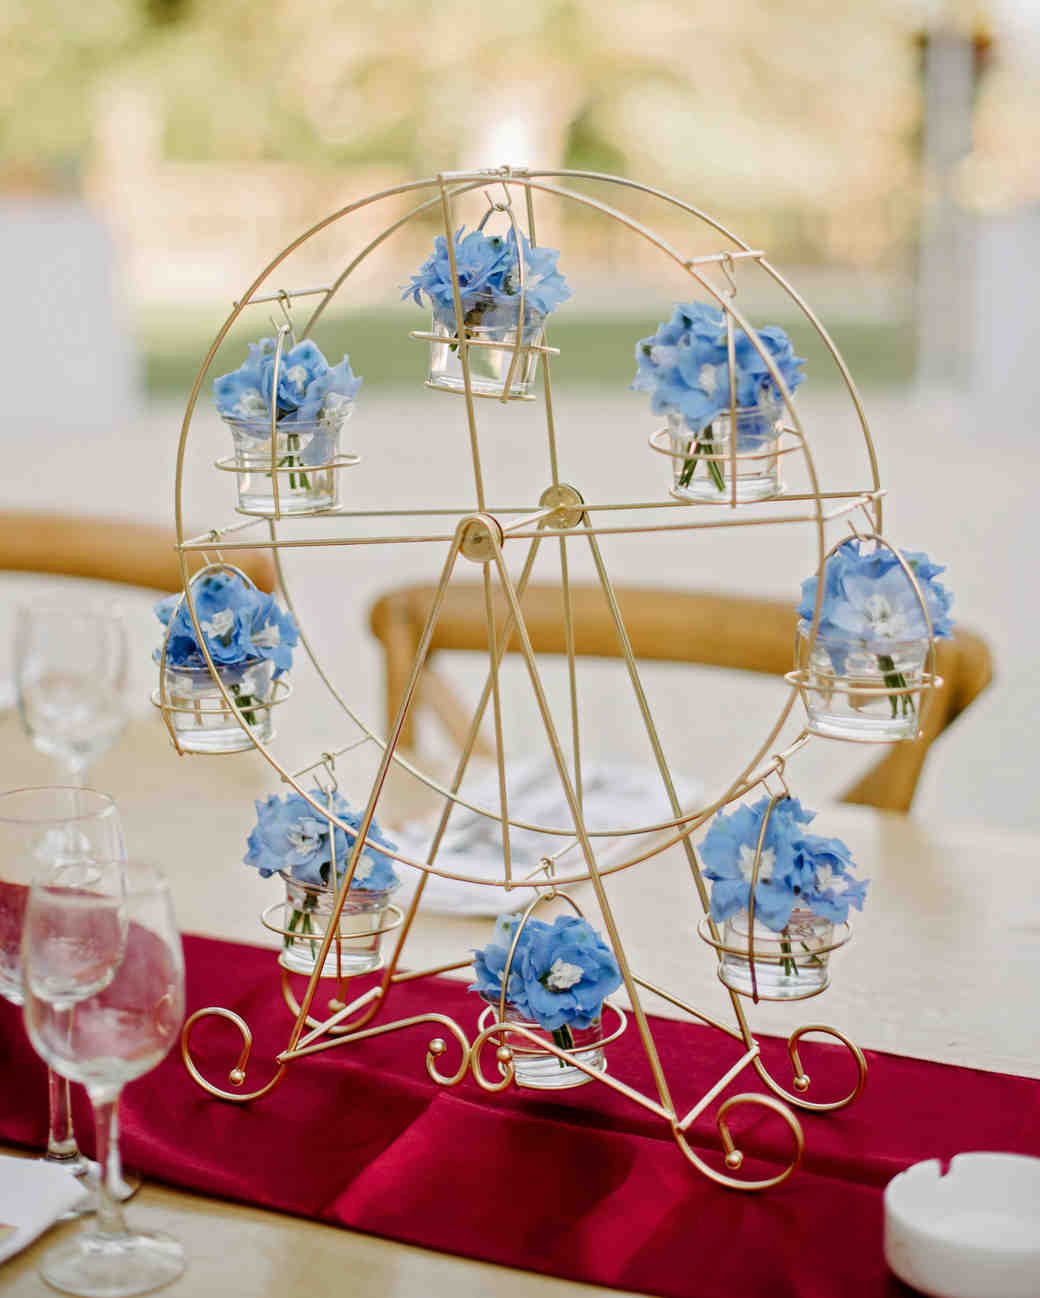 lara kjell circus party centerpiece decor flowers